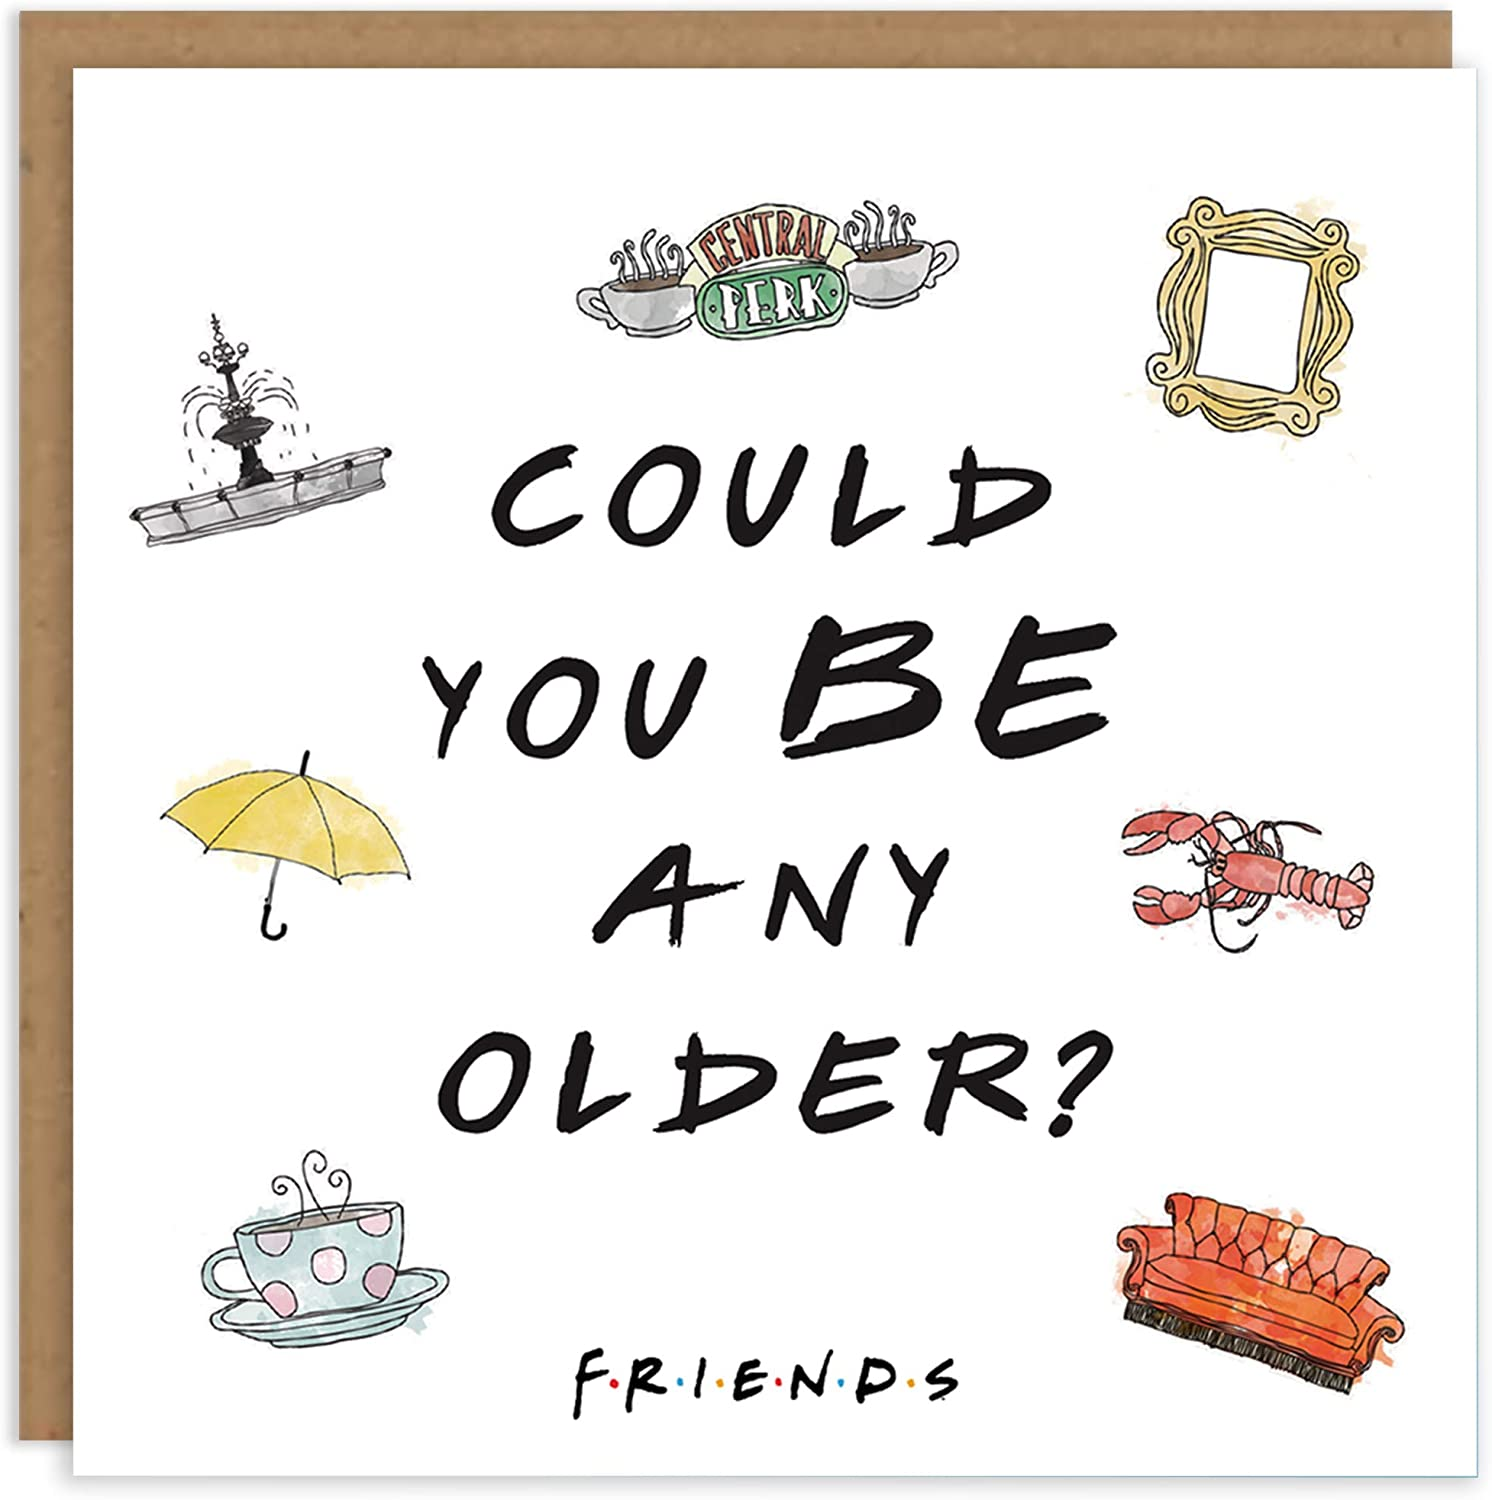 Friends TV Show Chandler Bing 'Could You Be Any Older' Official Licensed  Product